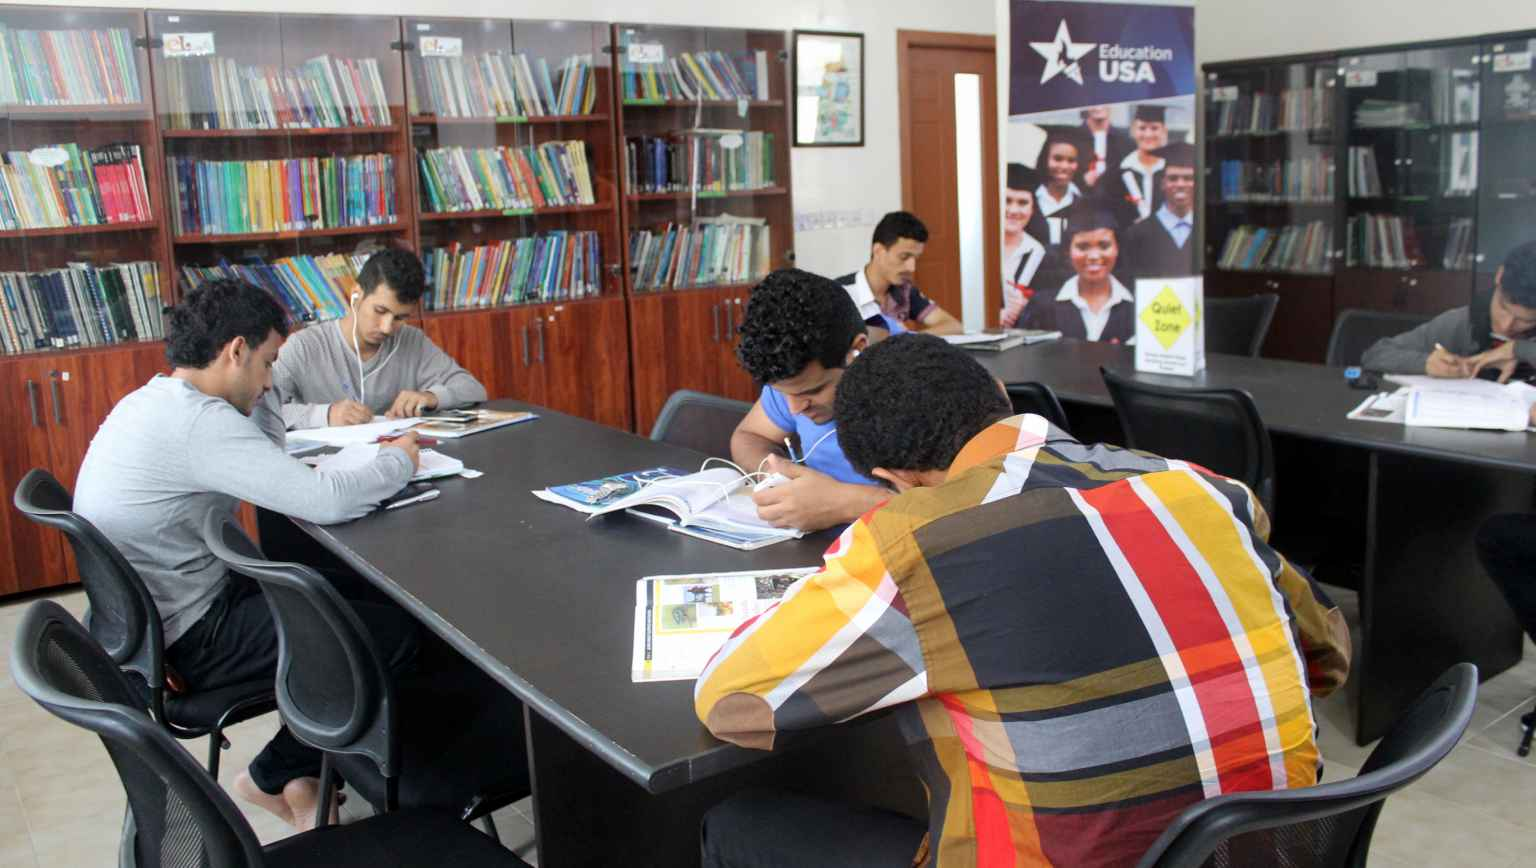 International students in EducationUSA library study room